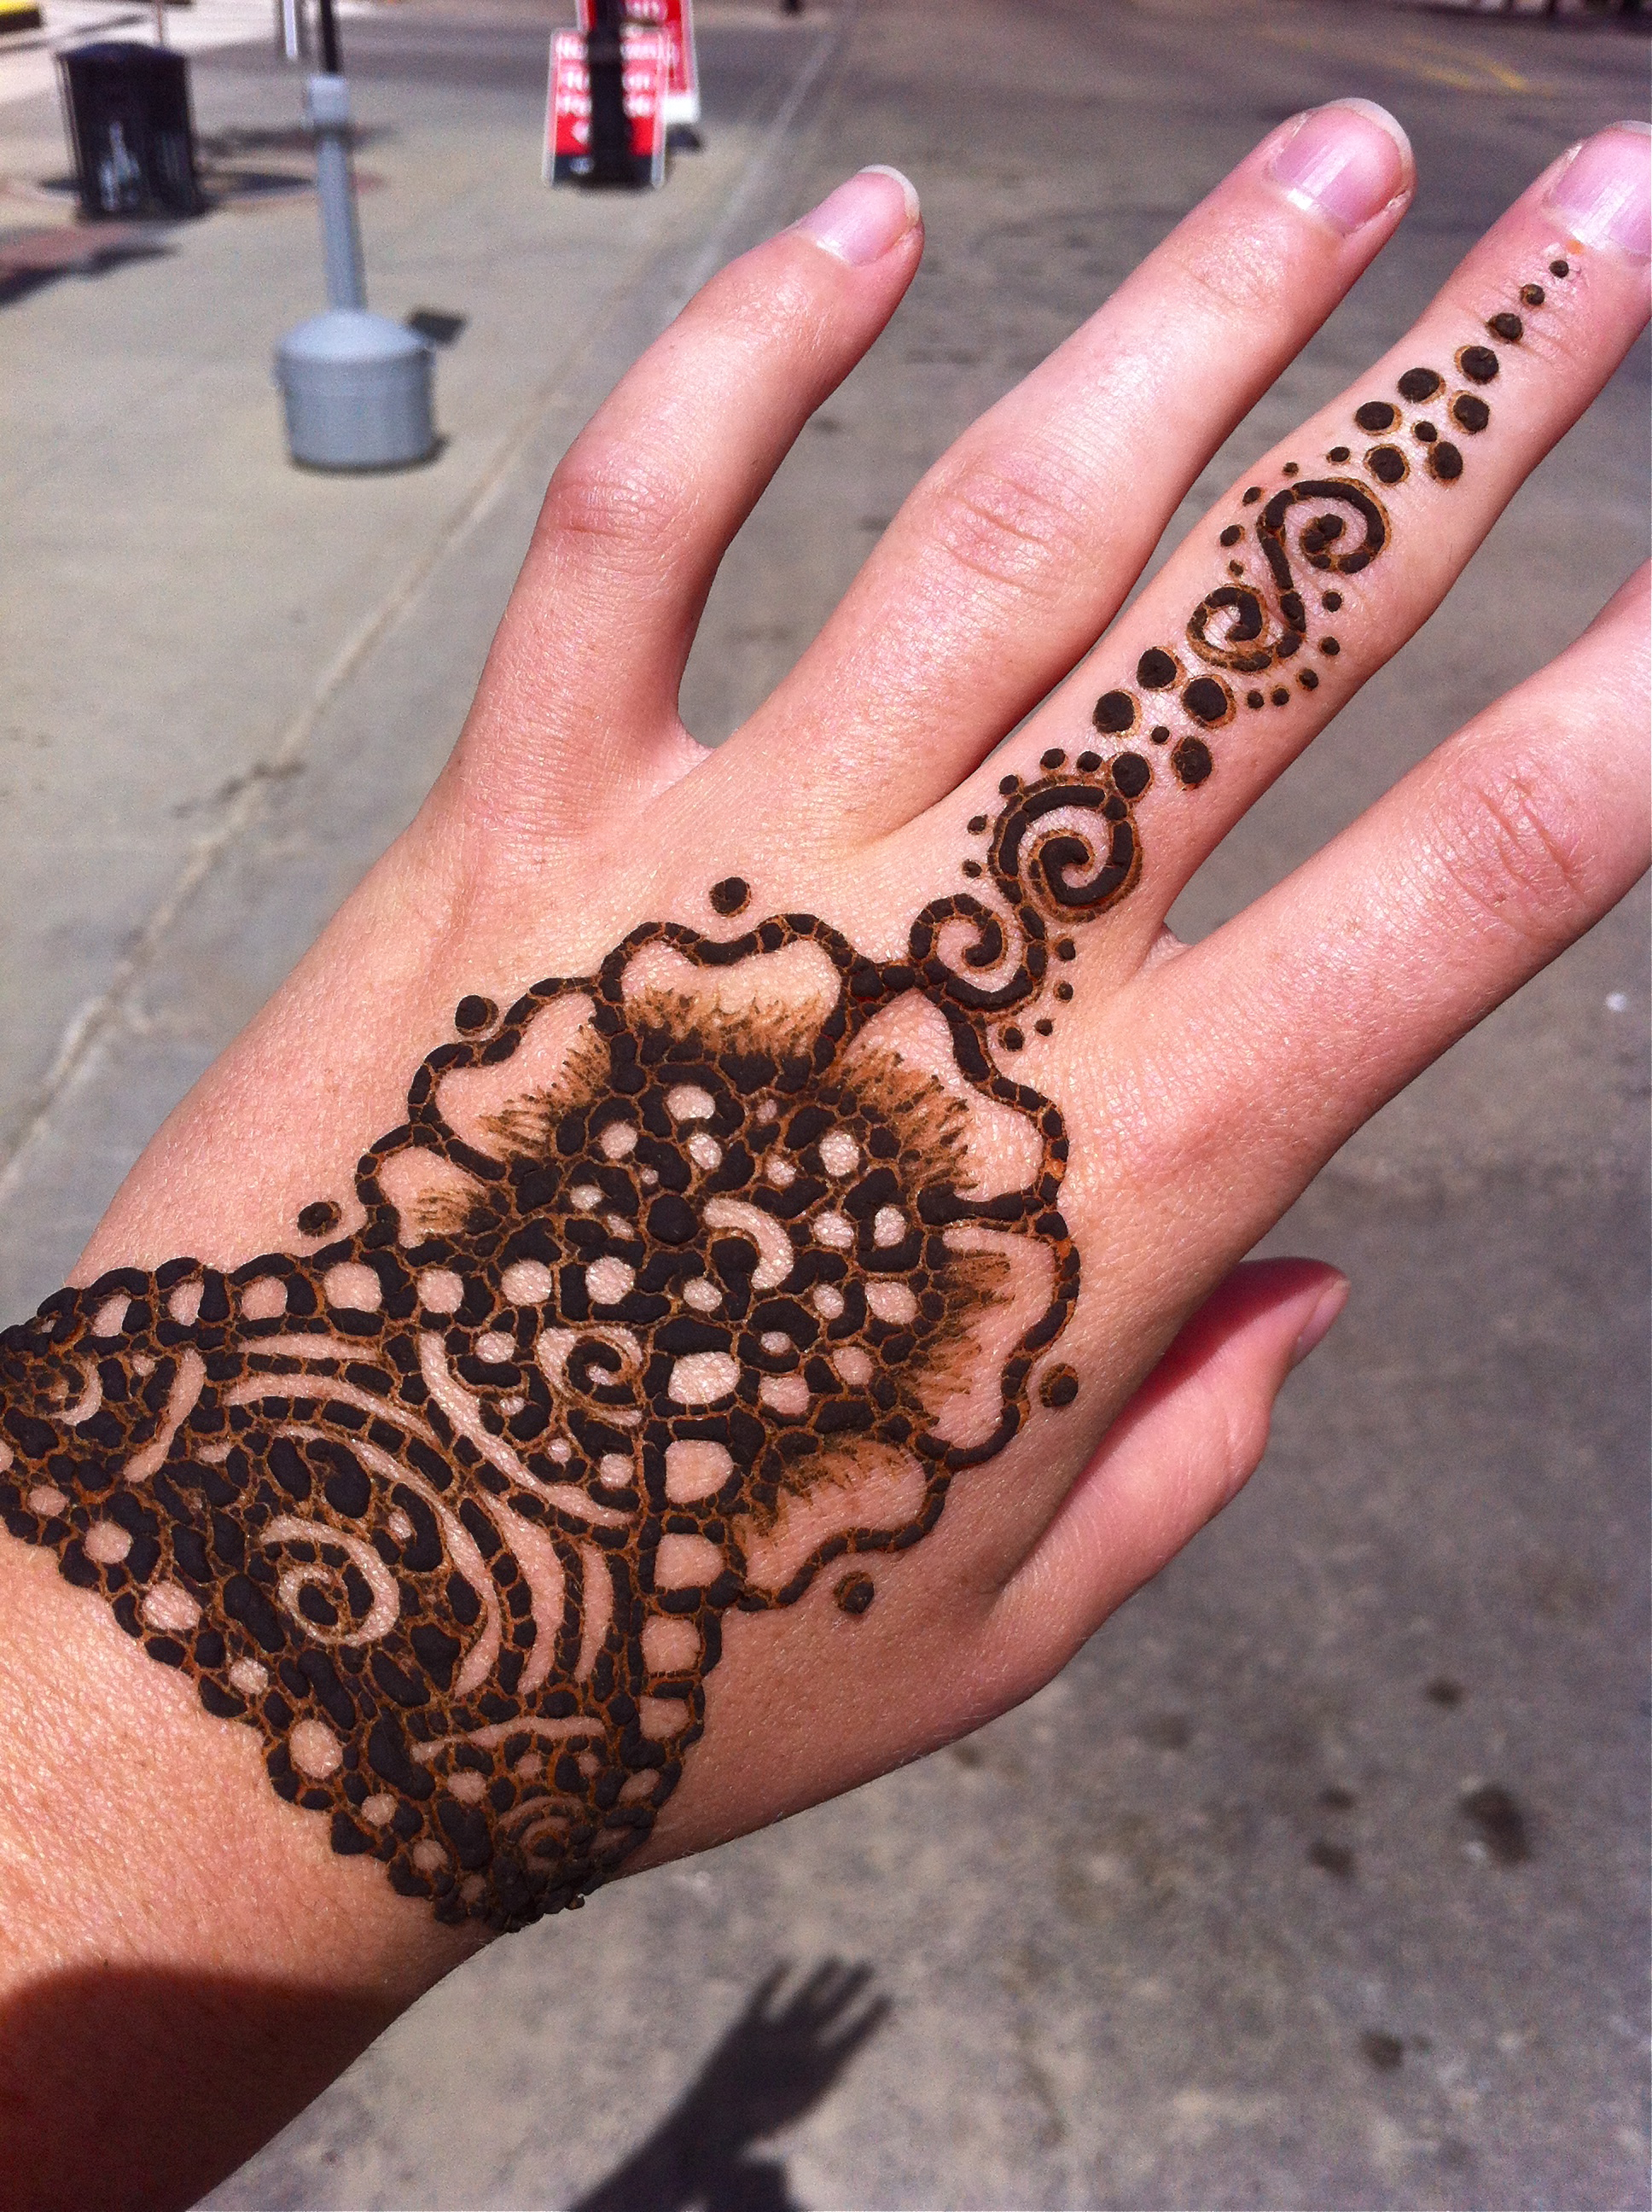 The henna paste goes on black, but dyes your skin a brownish-orange color if left on for at least 5-7 hours